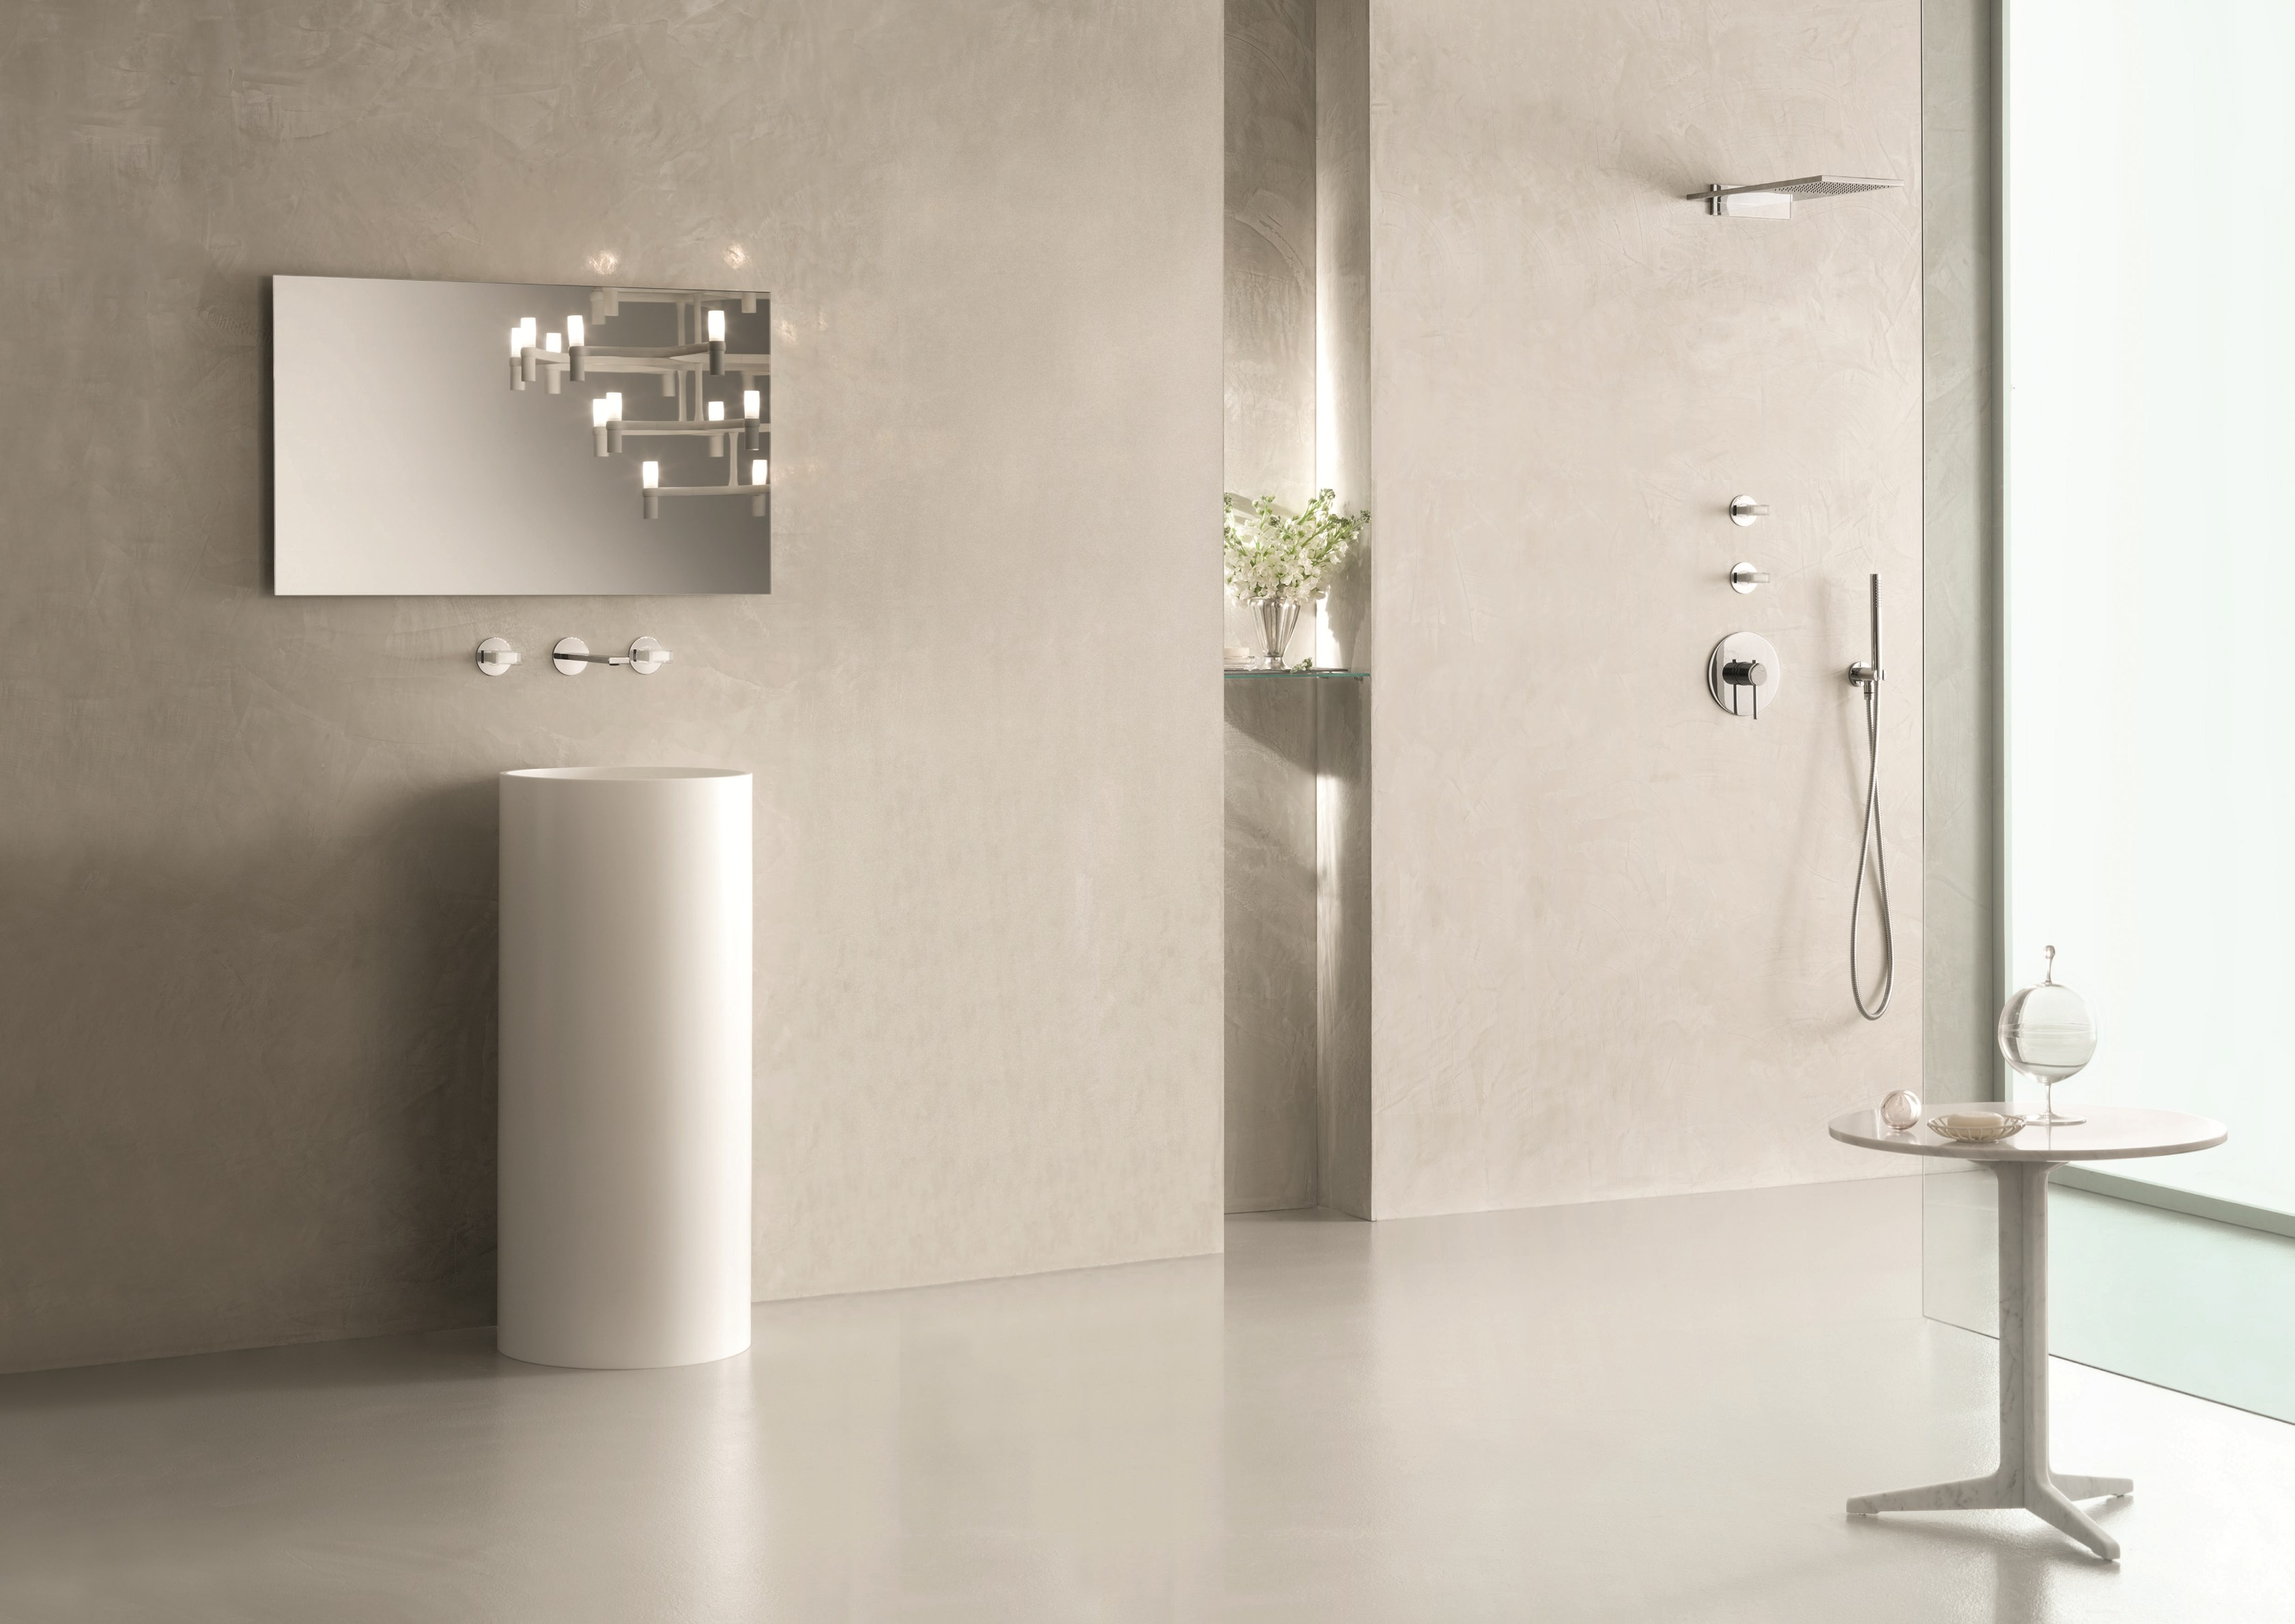 Venezia in wall mounted washbasin tap by fantini rubinetti for Rubinetti design